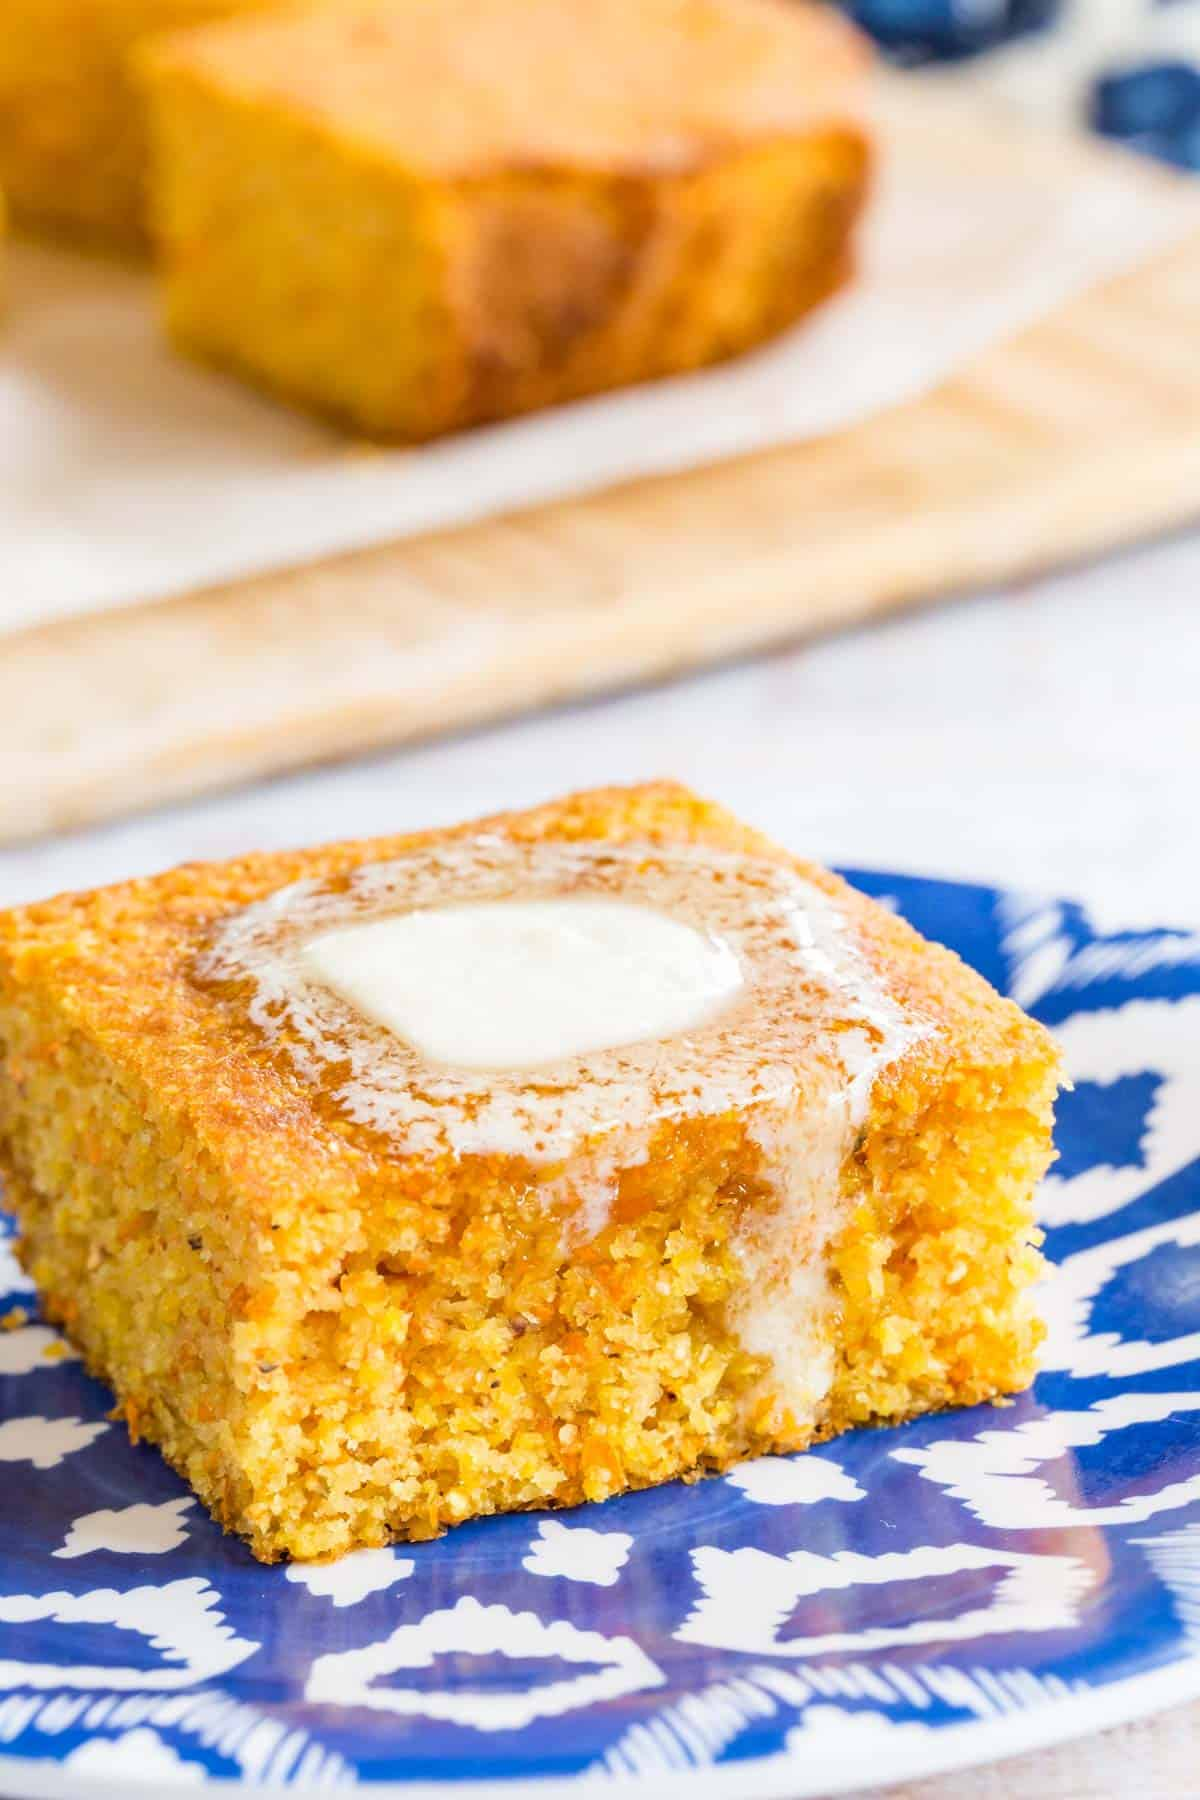 slice of cornbread with butter melting on top